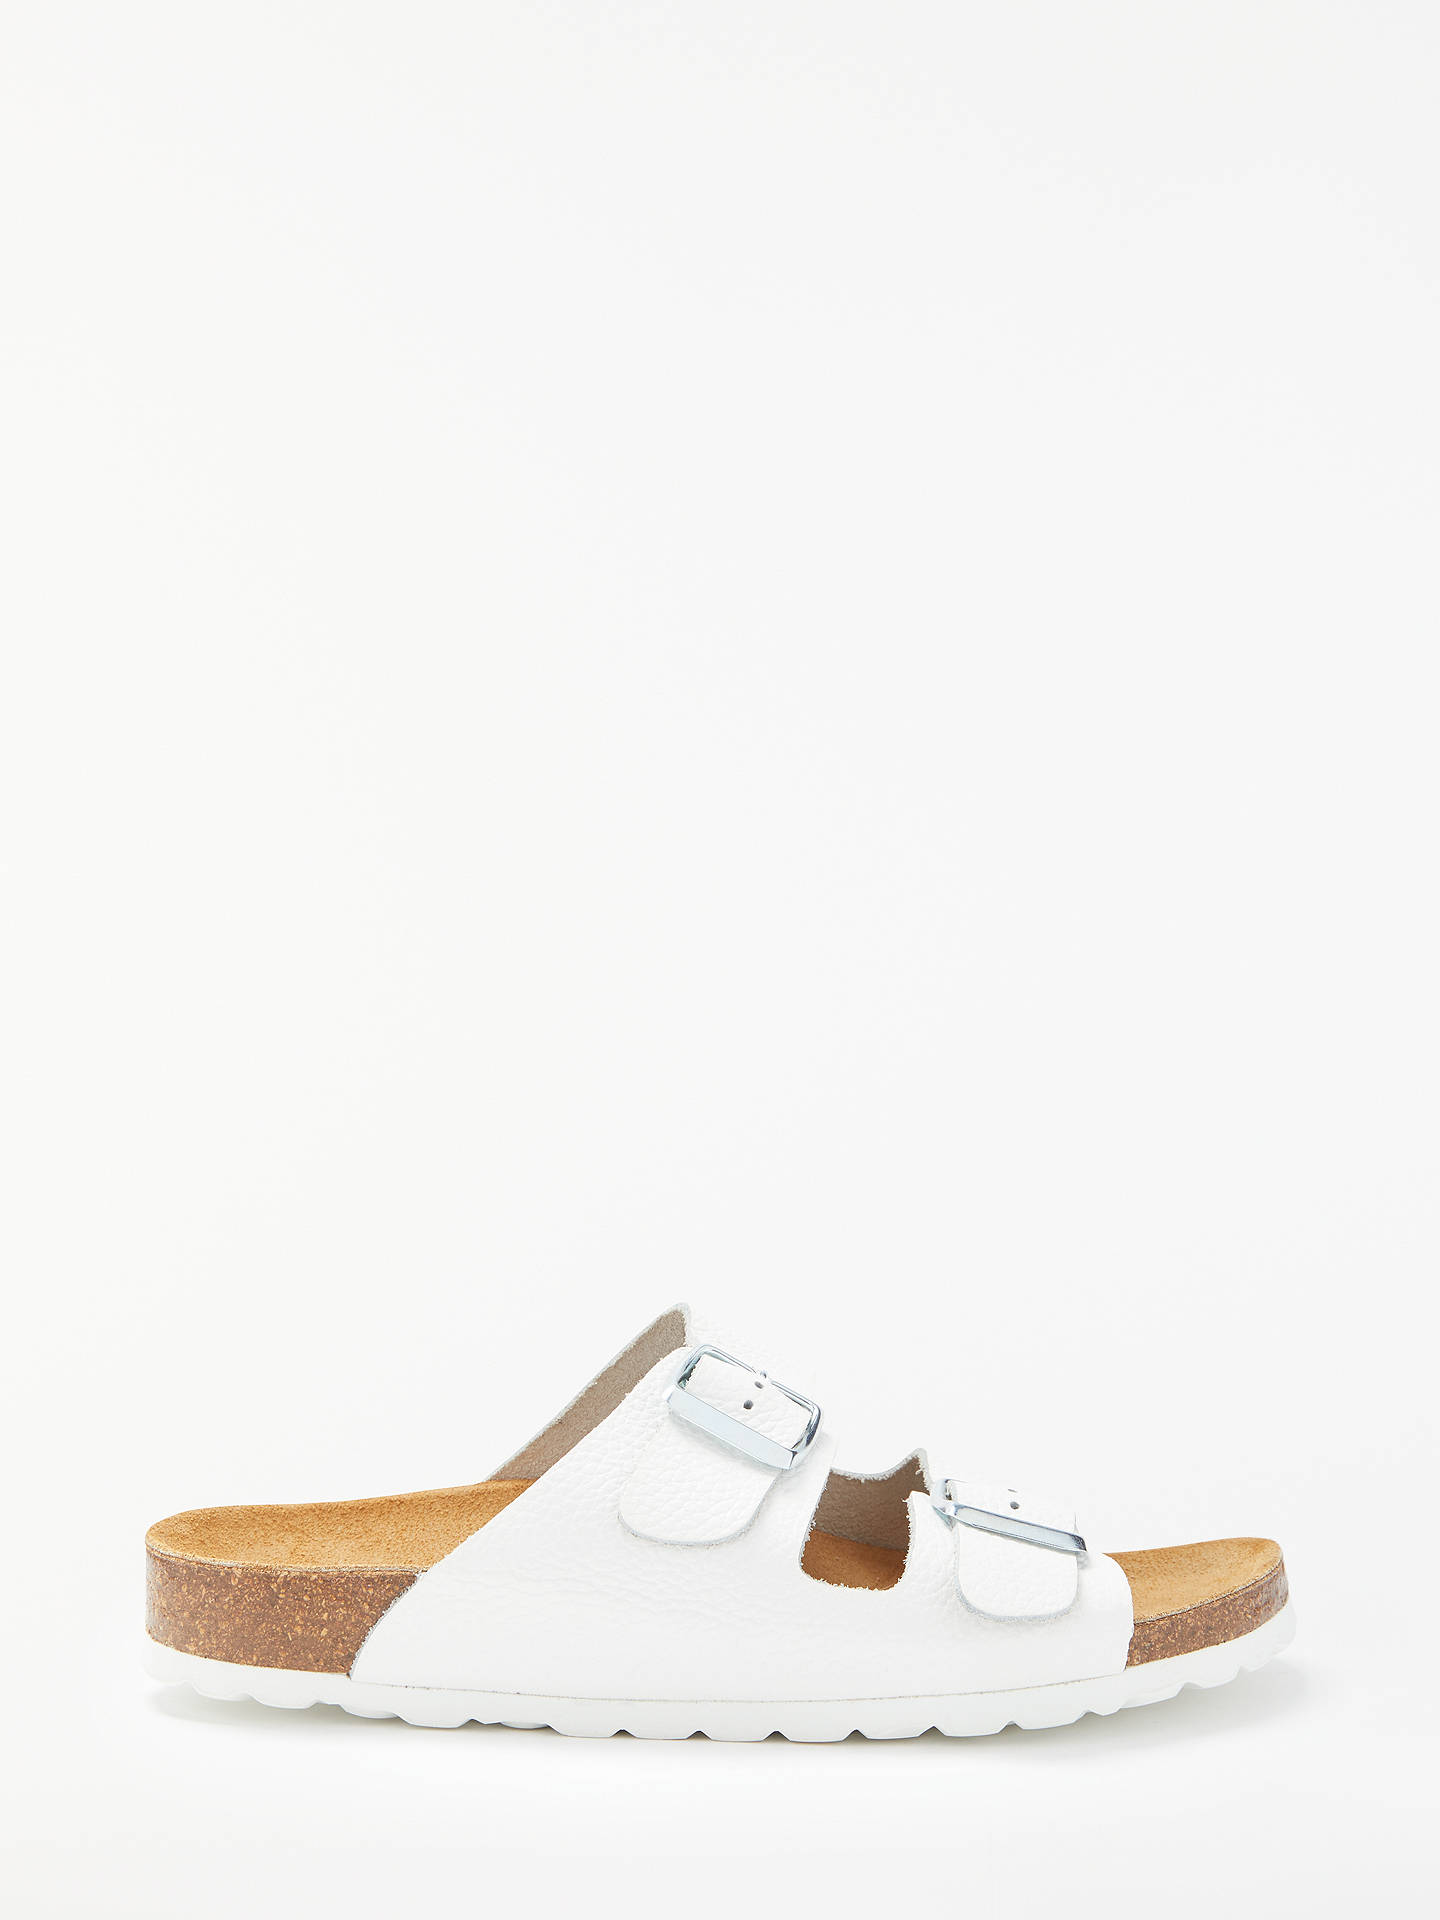 John Lewis Partners Lee Double Strap Slider Sandals White Leather Tendencies Footbed 2 Brown 40 Buyjohn 3 Online At